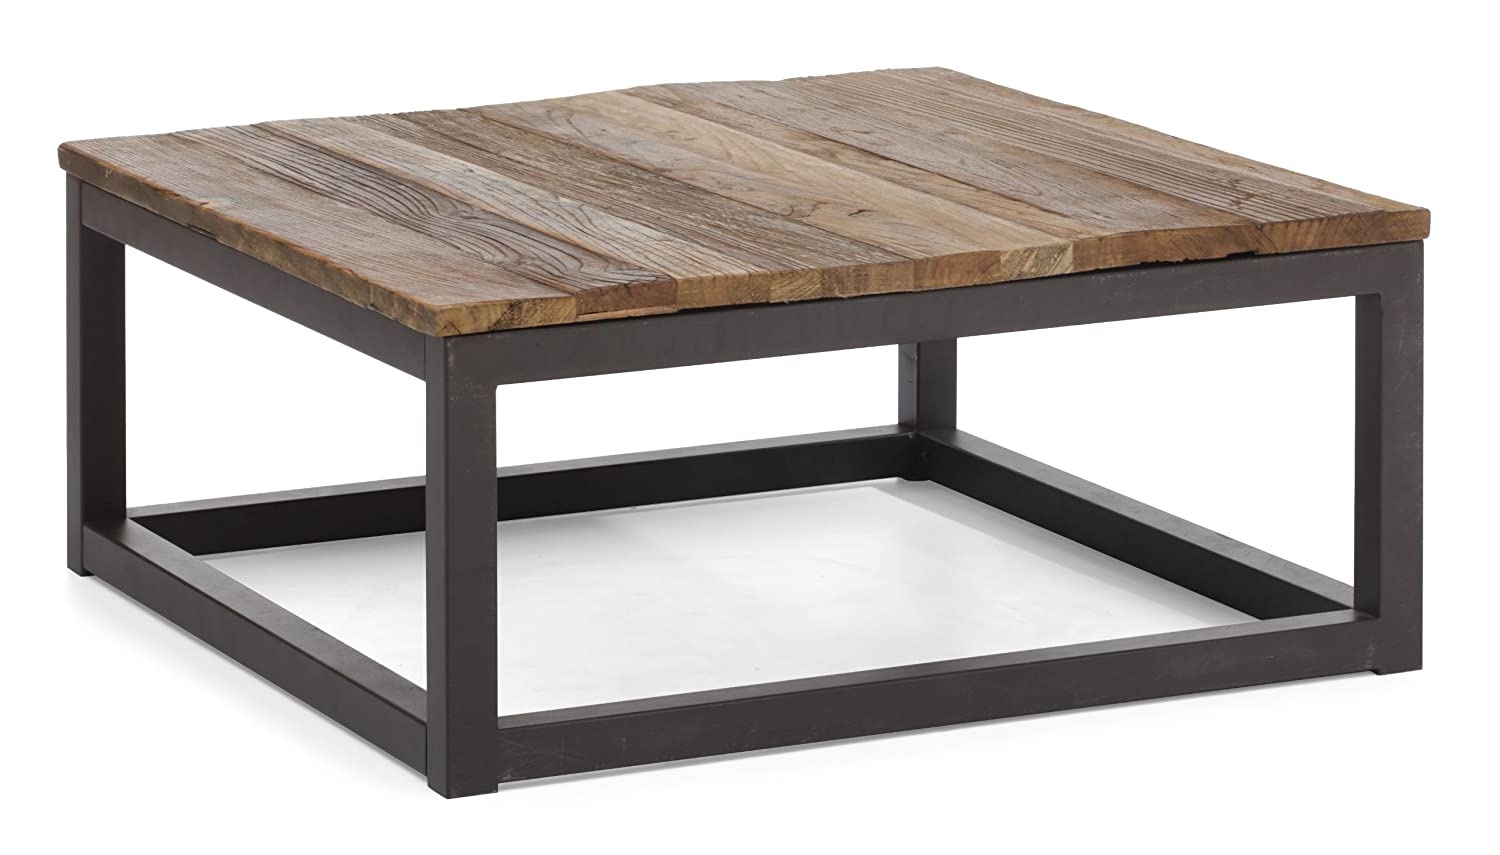 amazoncom zuo modern civic center square coffee table  - amazoncom zuo modern civic center square coffee table distressed naturalkitchen  dining